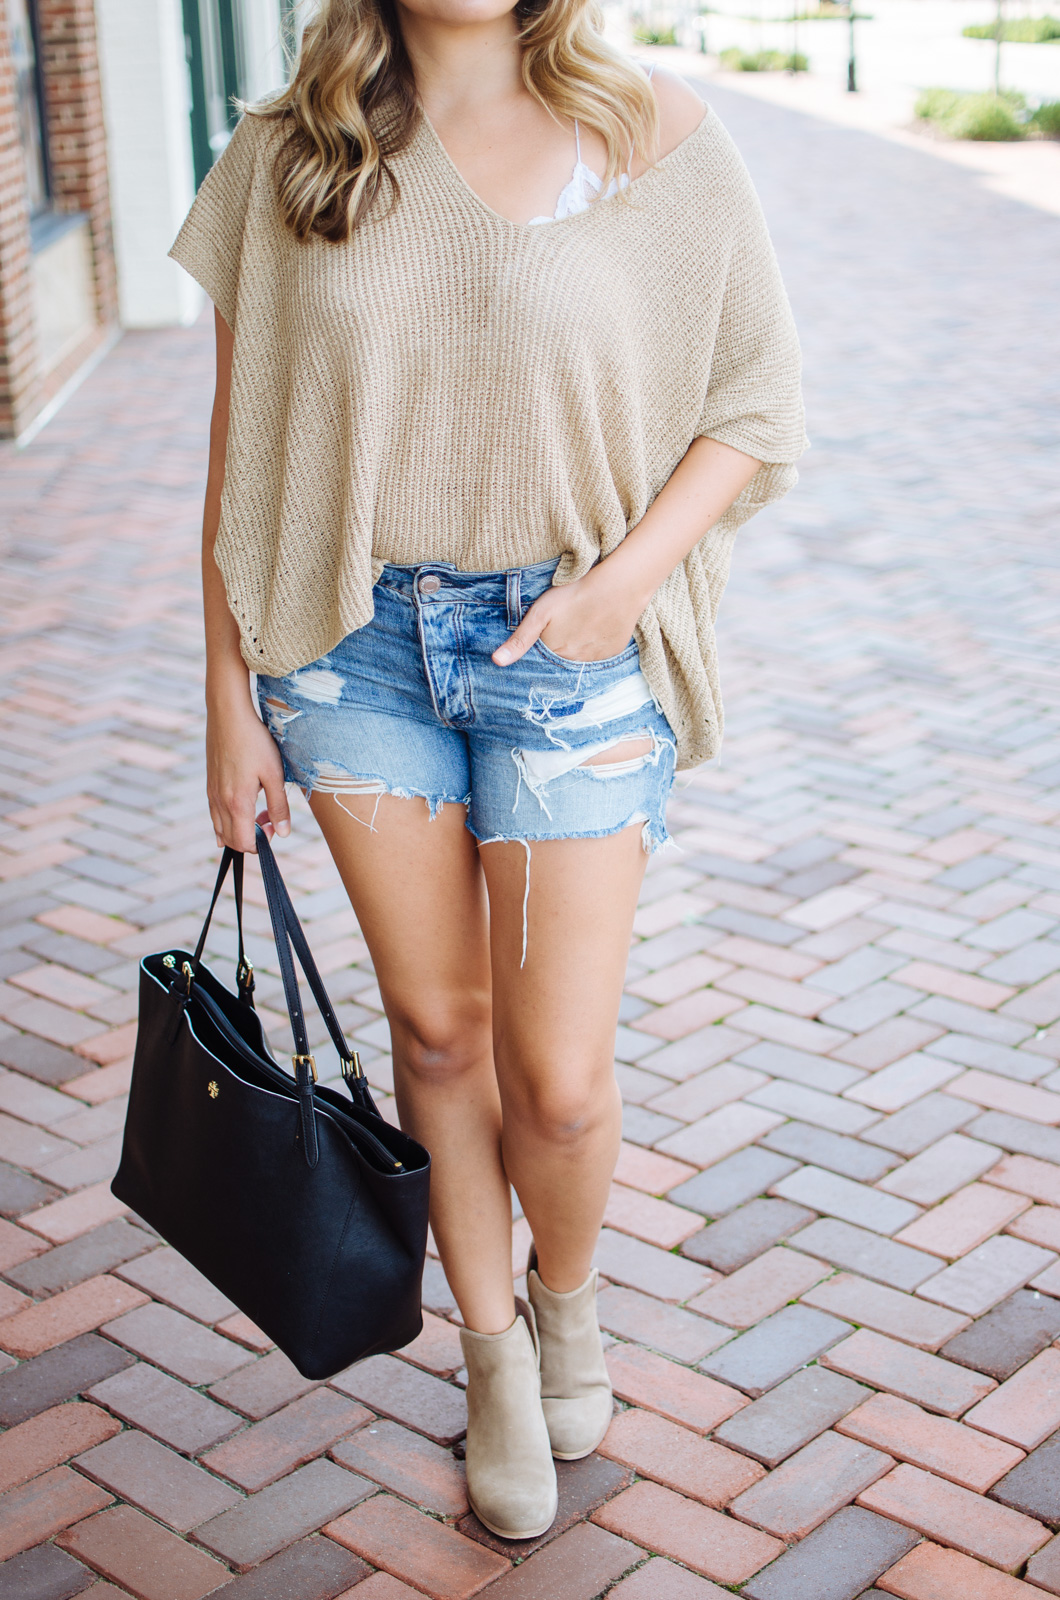 bralette sweater outfit - short sleeve sweater | For more fall transition outfits, go to bylaurenm.com!